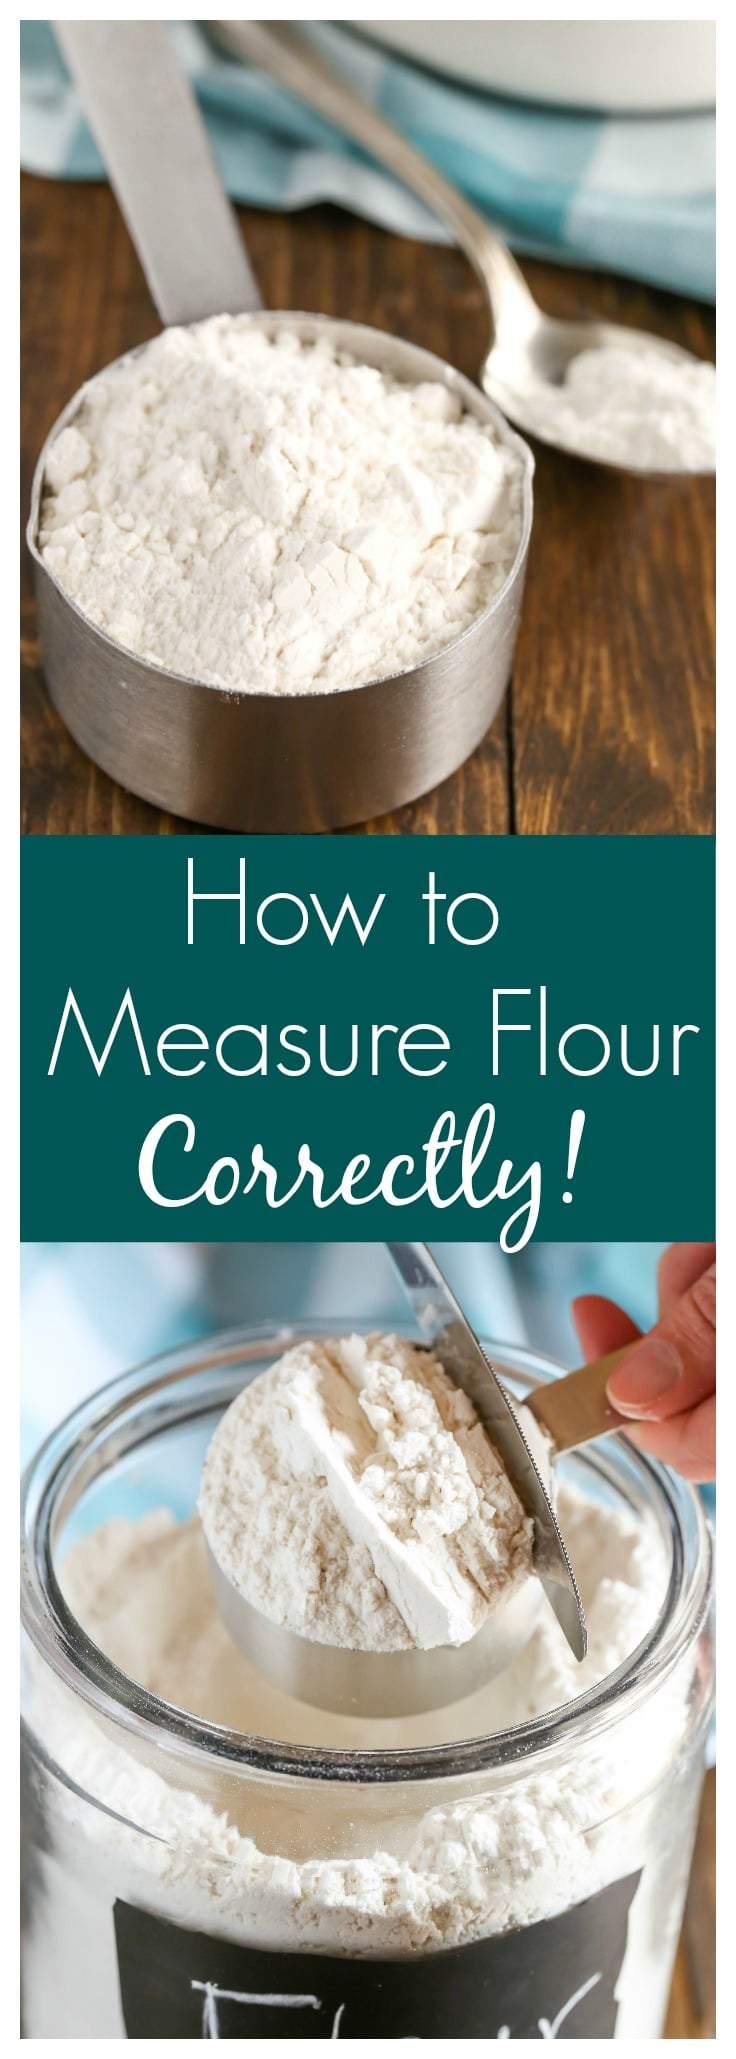 Learn how to measure flour with the spoon and level method.